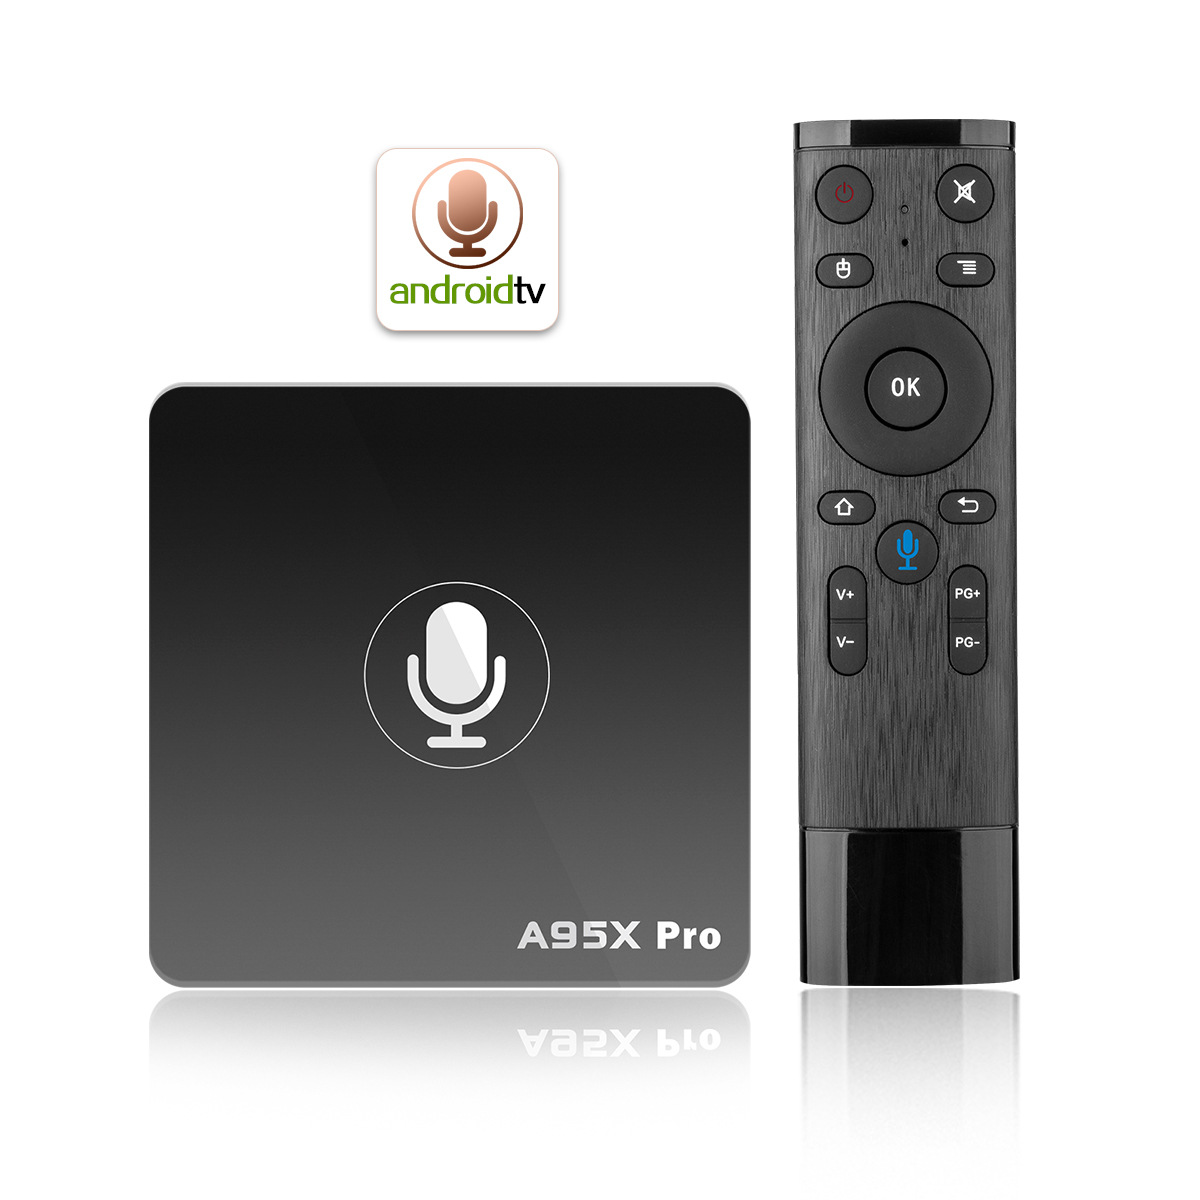 A95X Pro Google Android 7.1 TV Kutusu 2 GB RAM 16 GB ROM 4 K UHD Amlogic Media Player ile Ses Uzaktan 2.4G WiFi